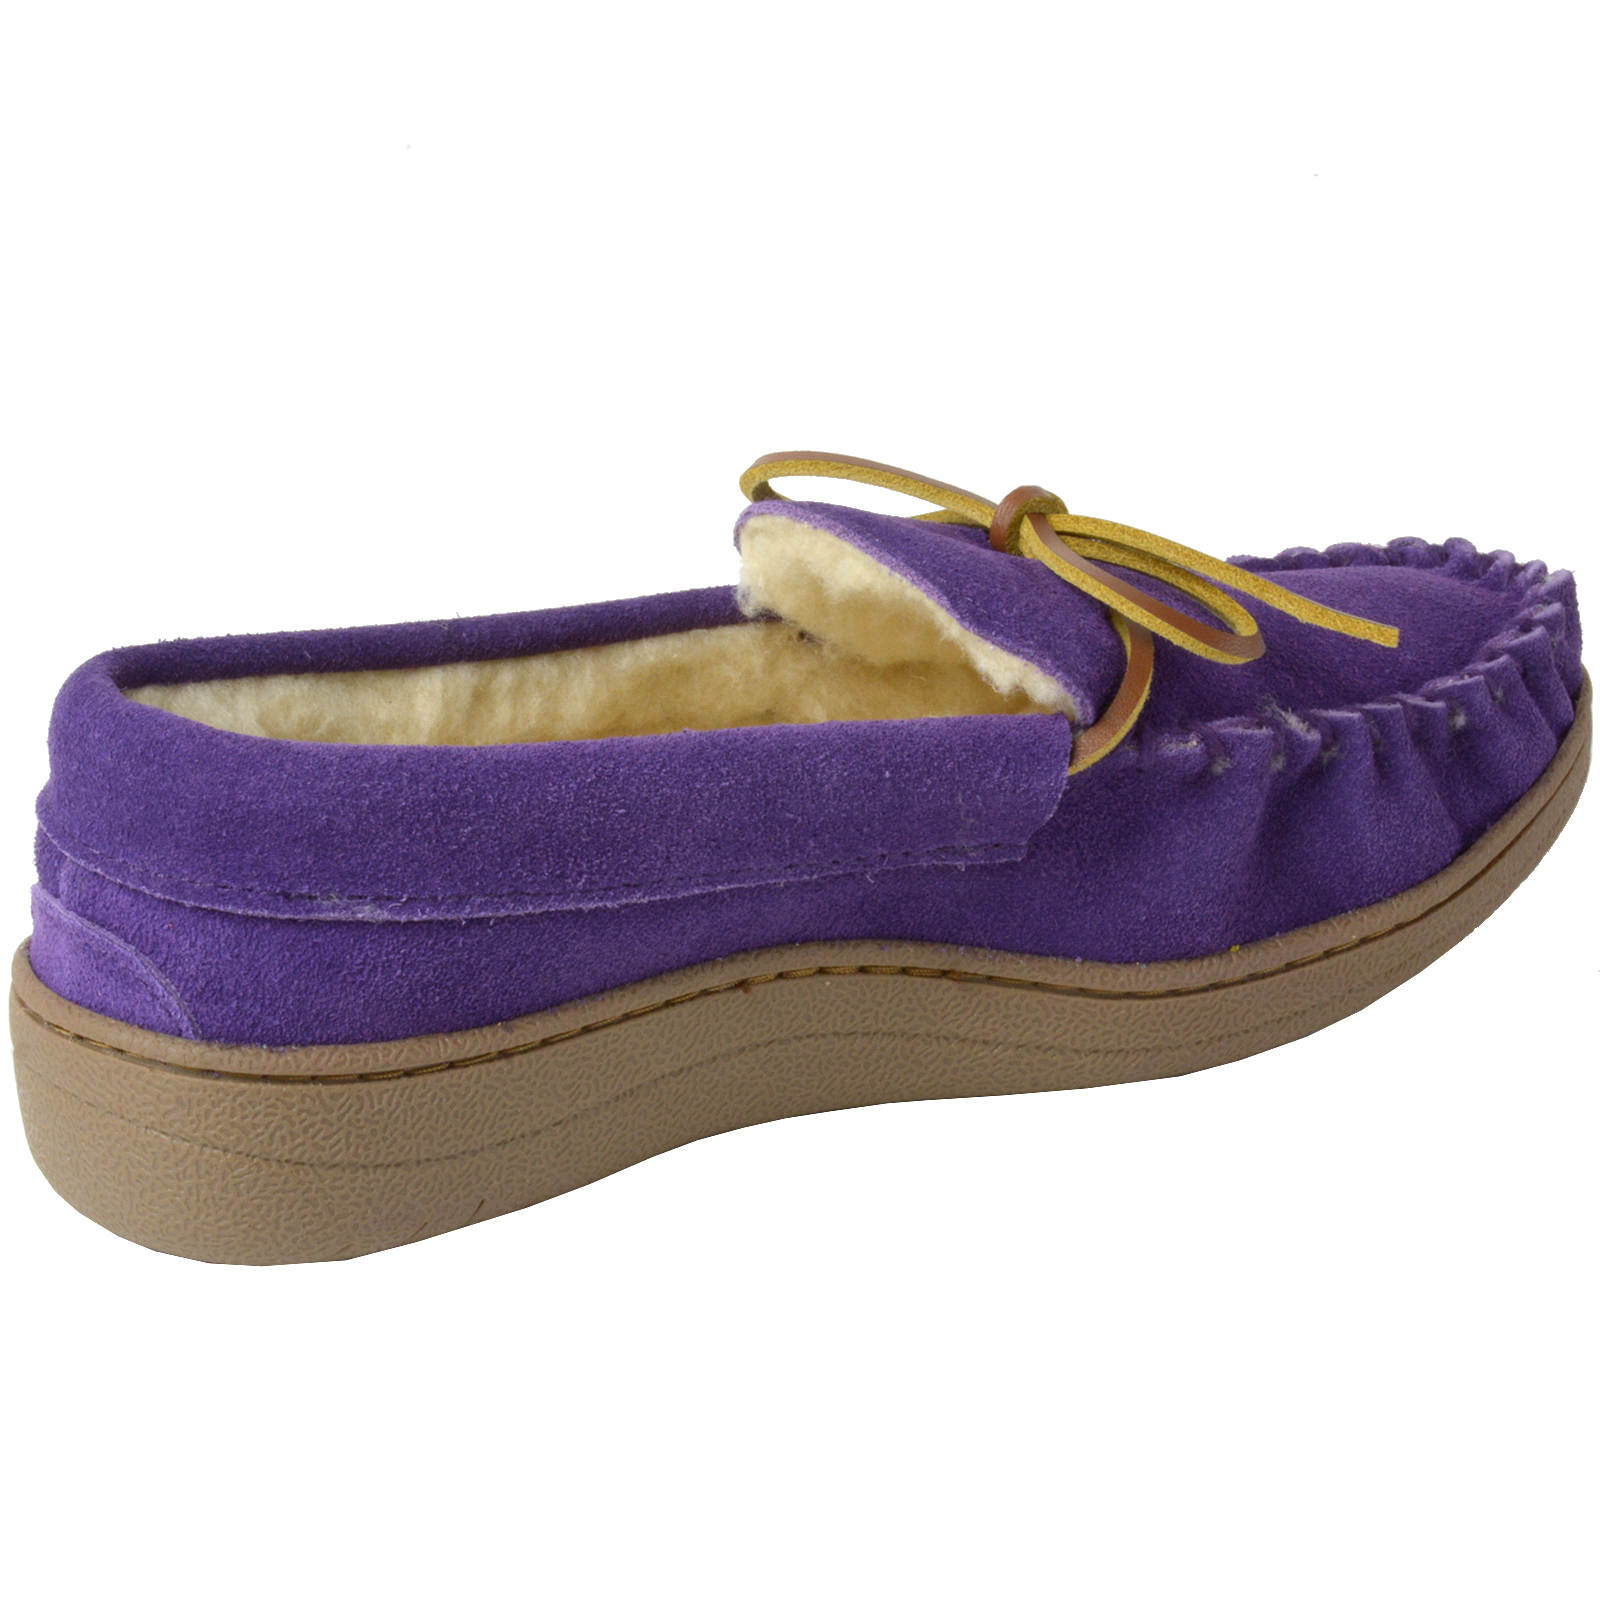 Alpine-Swiss-Sabine-Womens-Suede-Shearling-Moccasin-Slippers-House-Shoes-Slip-On miniature 36